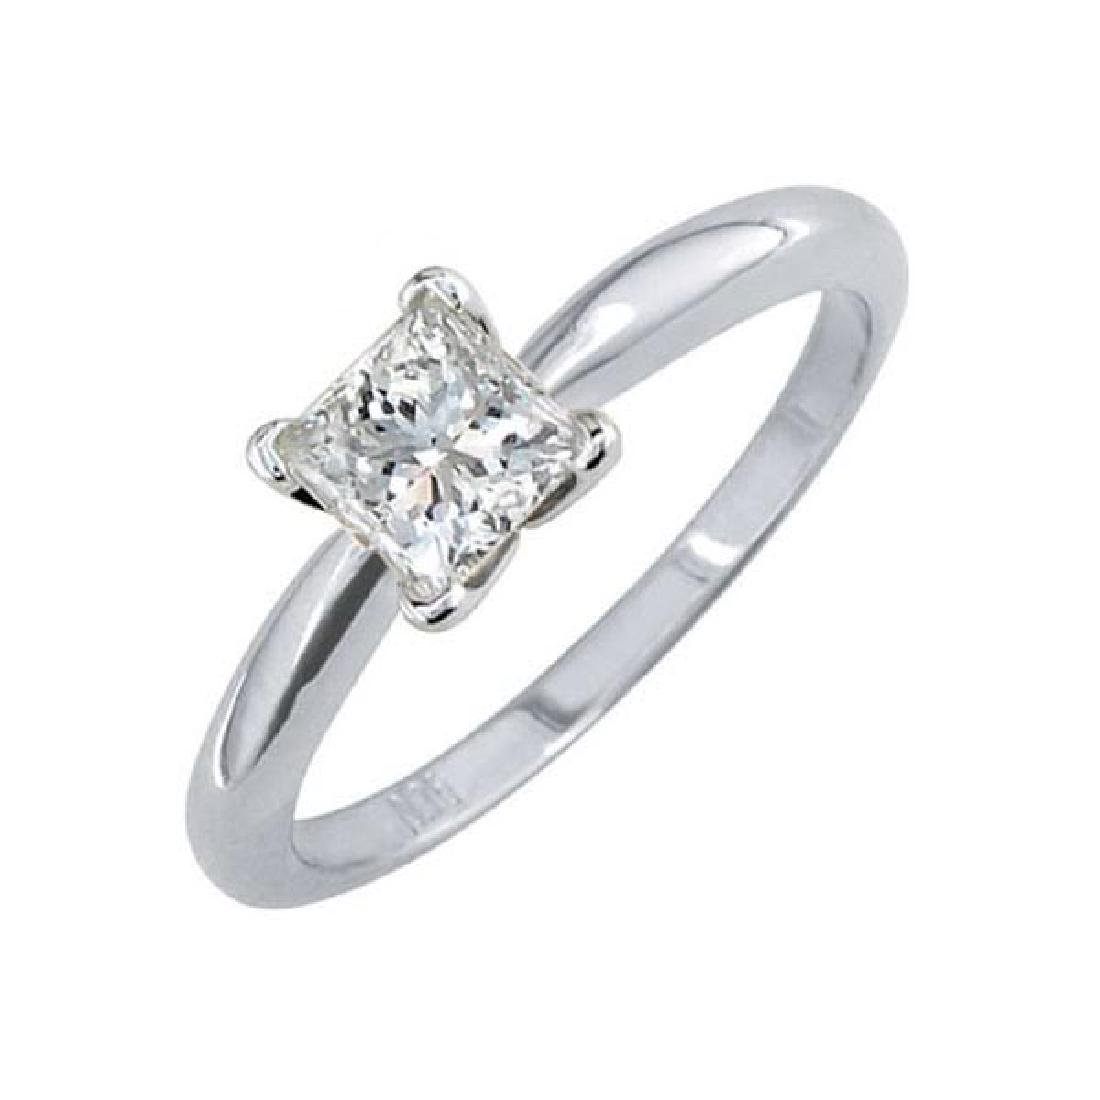 Certified 1.5 CTW Princess Diamond Solitaire 14k Ring G